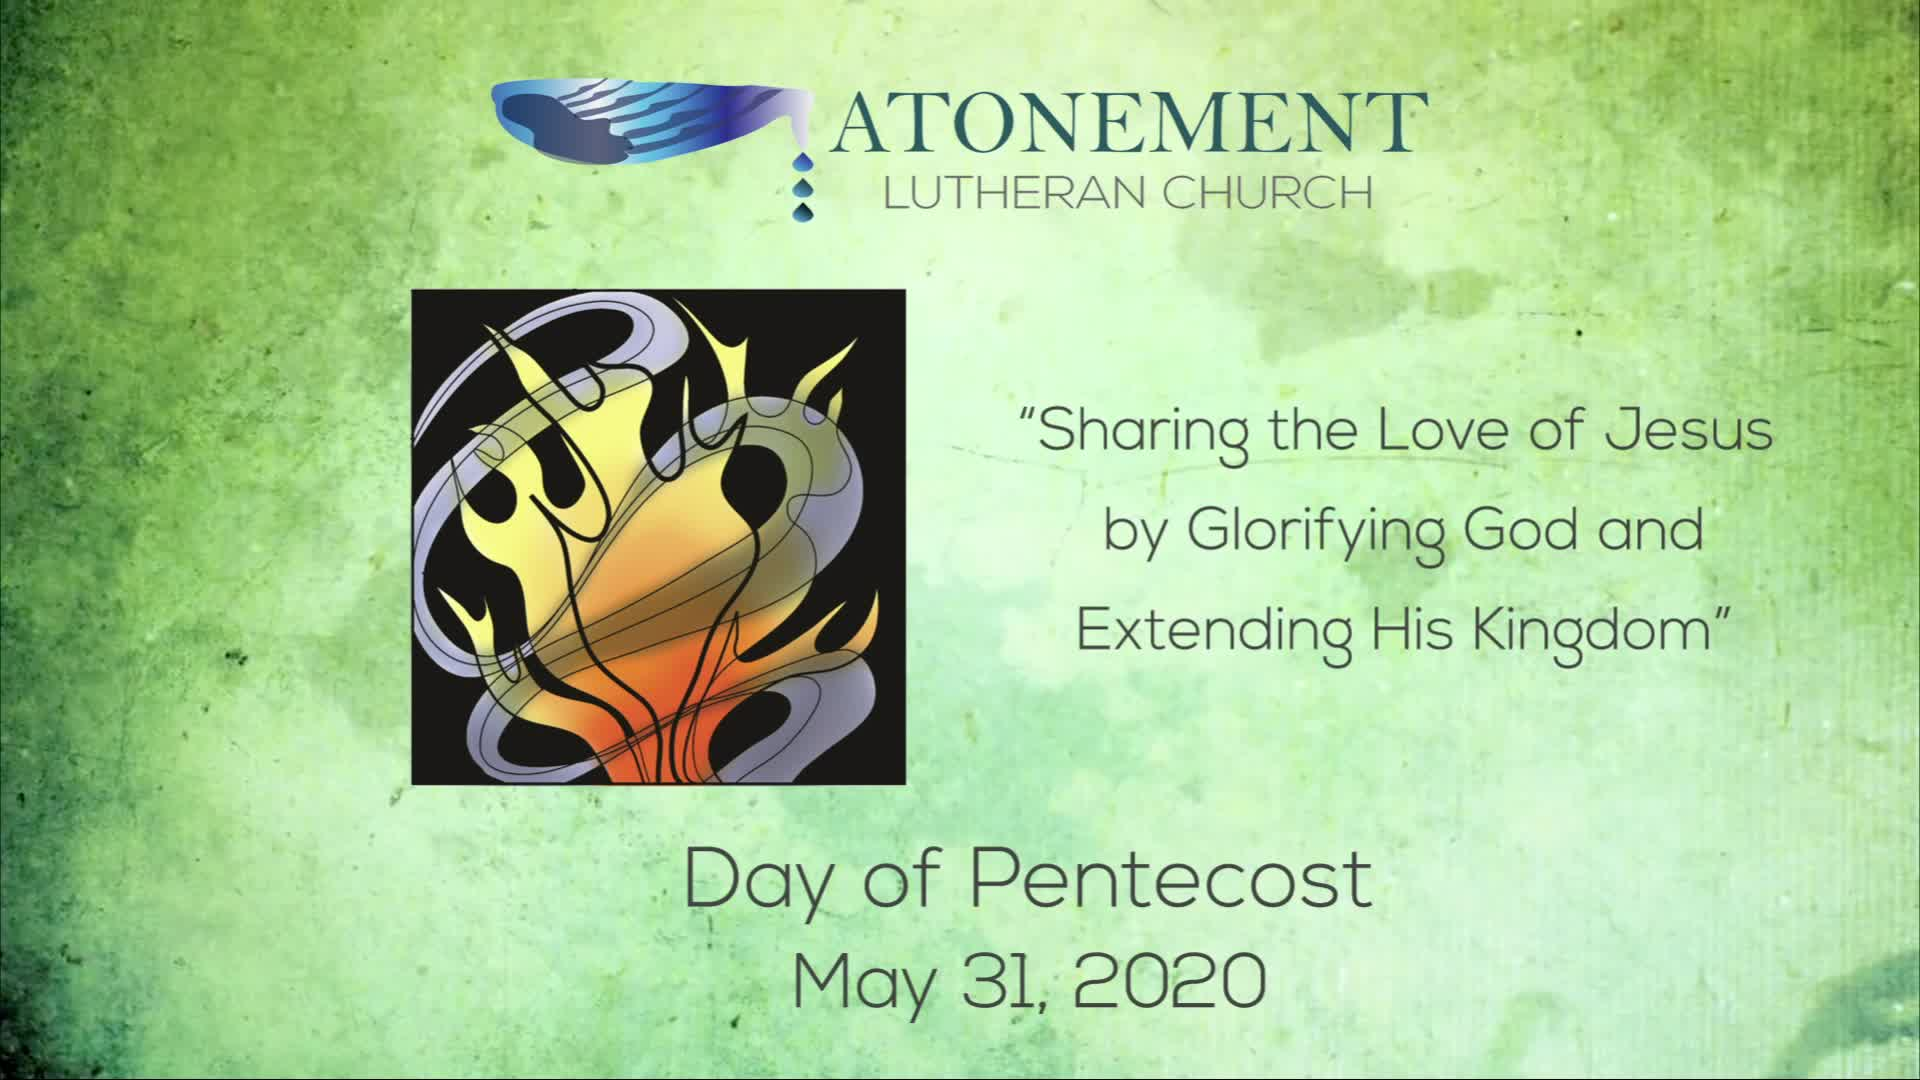 May 31 2020 Day of Pentecost